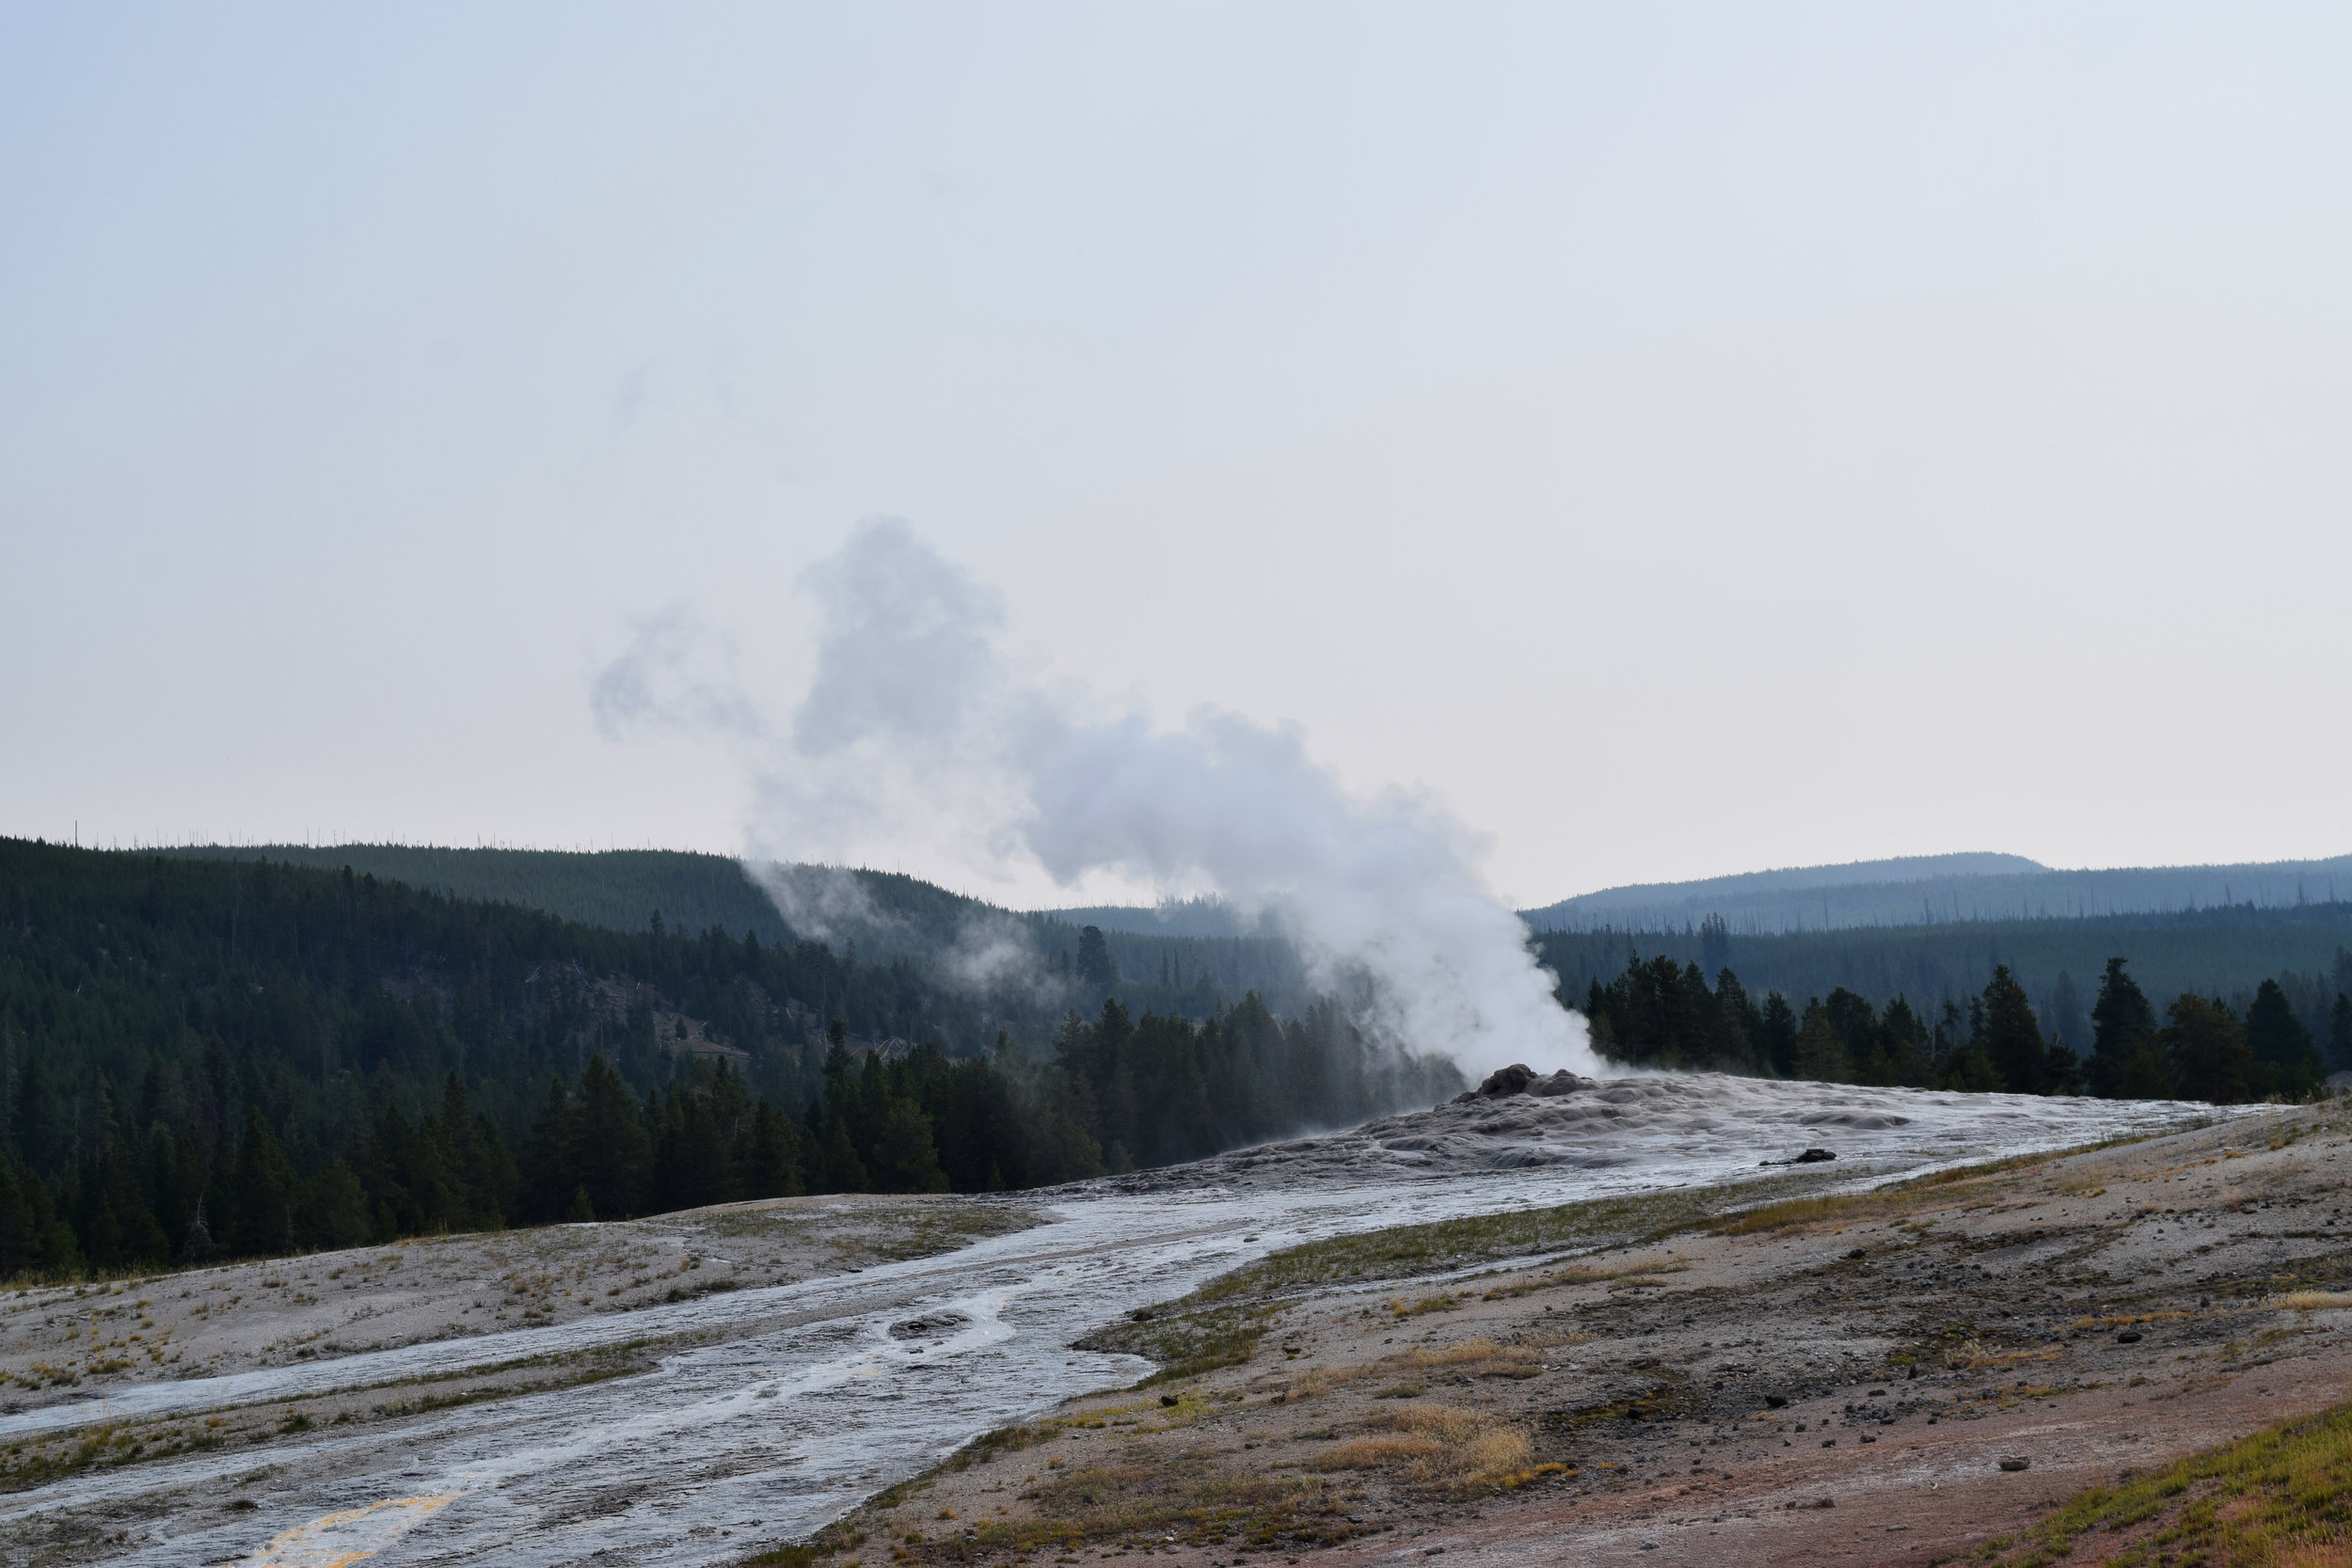 Old Faithful was named so because it would produce an eruption of water and steam precisely every 60 minutes. An earthquake in 1959 dramatically altered the landscape of the Yellowstone region and changed Old Faithful's schedule, making it less predictable. Now she's not so faithful.